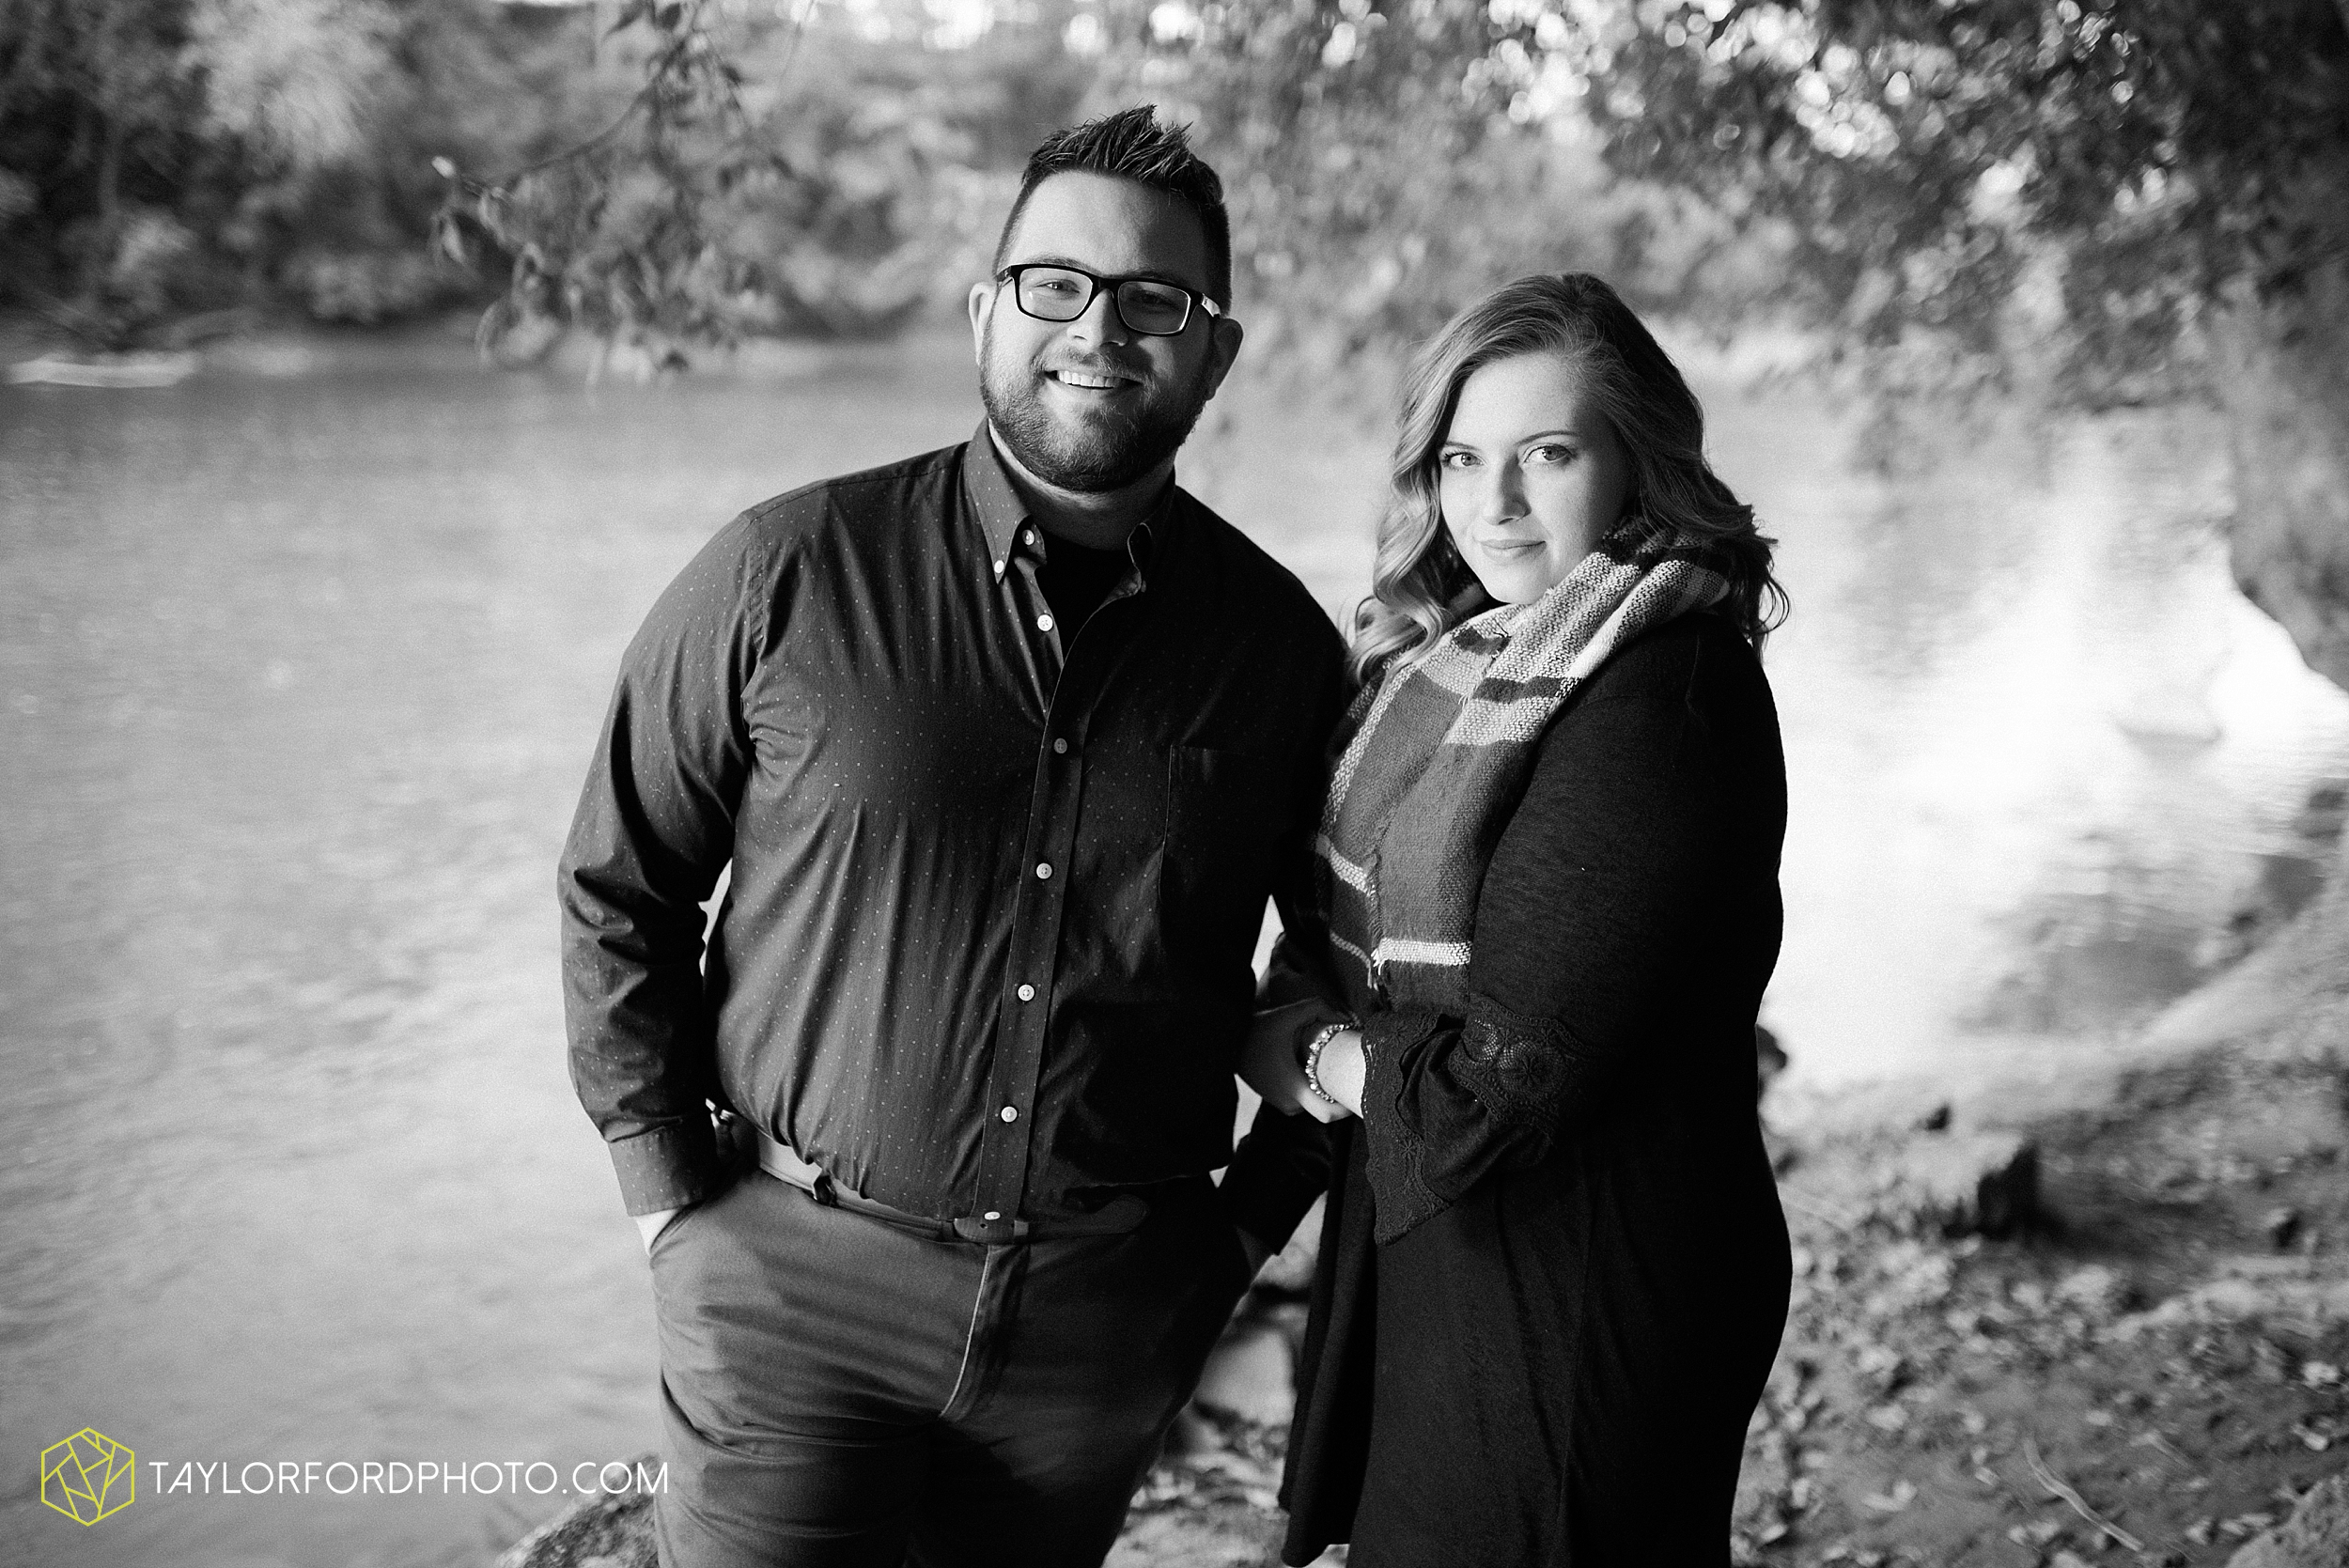 downtown-fort-wayne-engagement-foster-park-bravas-wunderkamer-fox-island-quarry-photographer-taylor-ford-photography_0965.jpg